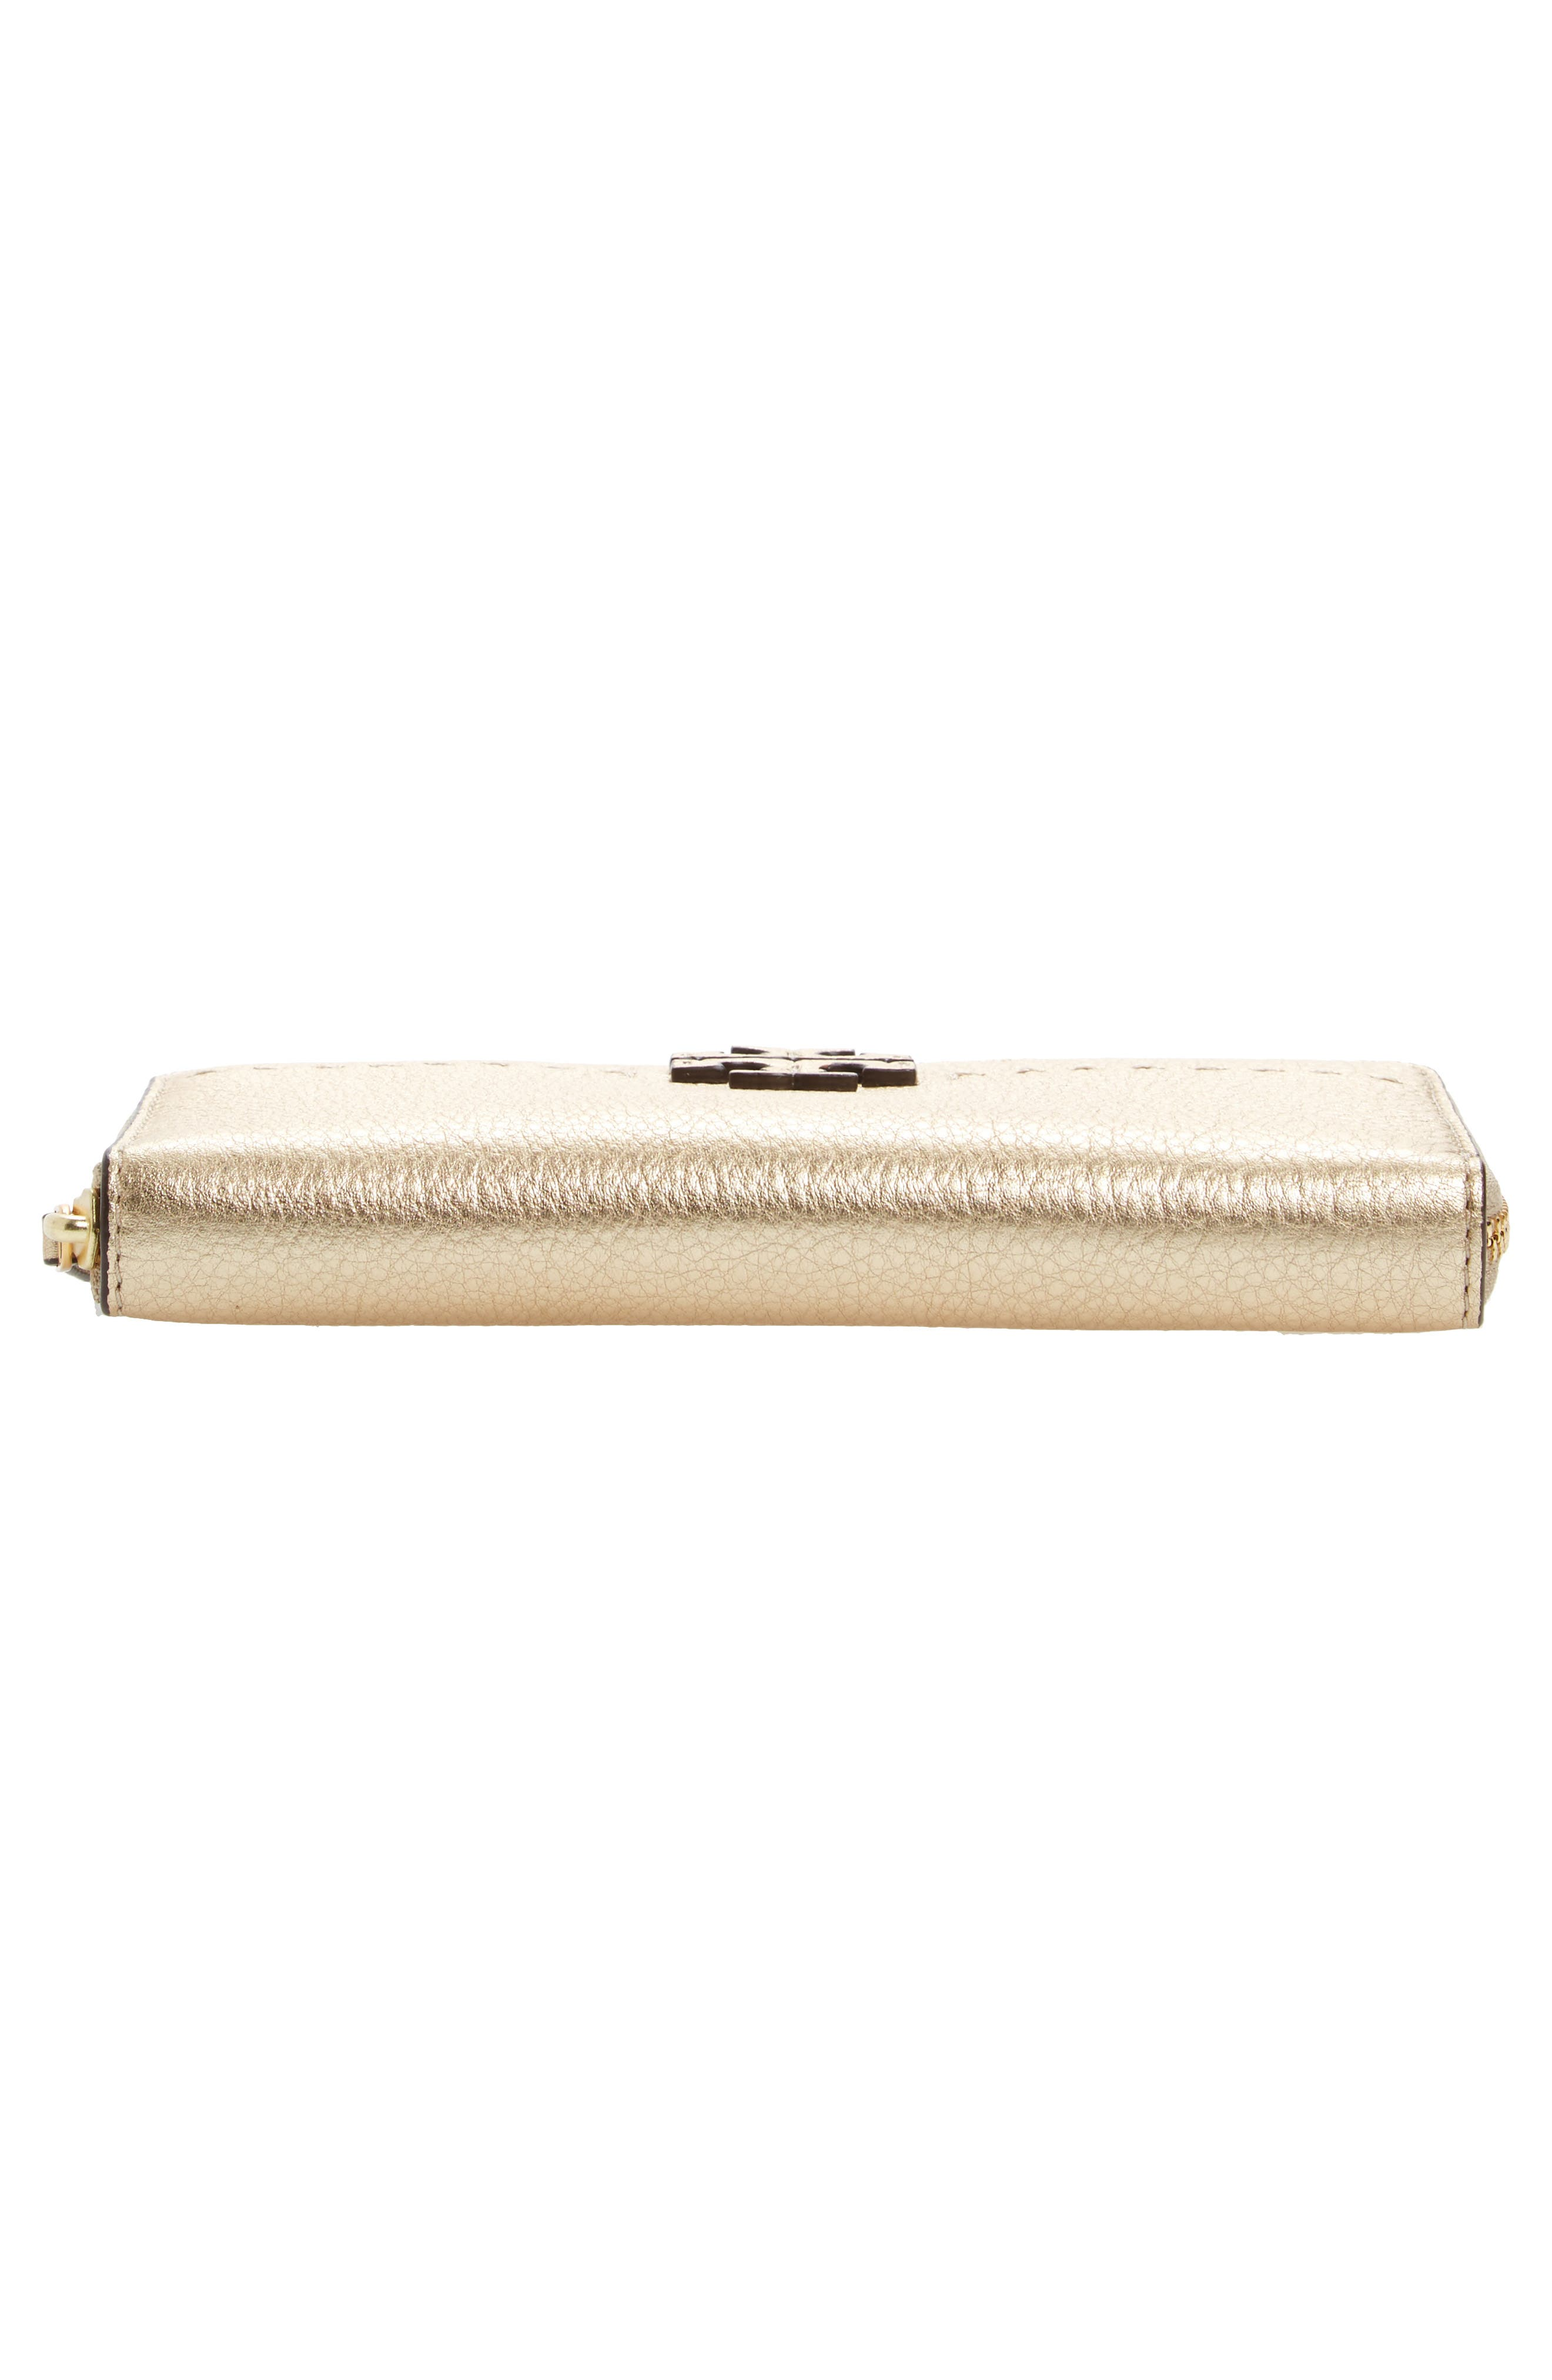 McGraw Leather Continental Wallet,                             Alternate thumbnail 5, color,                             Gold